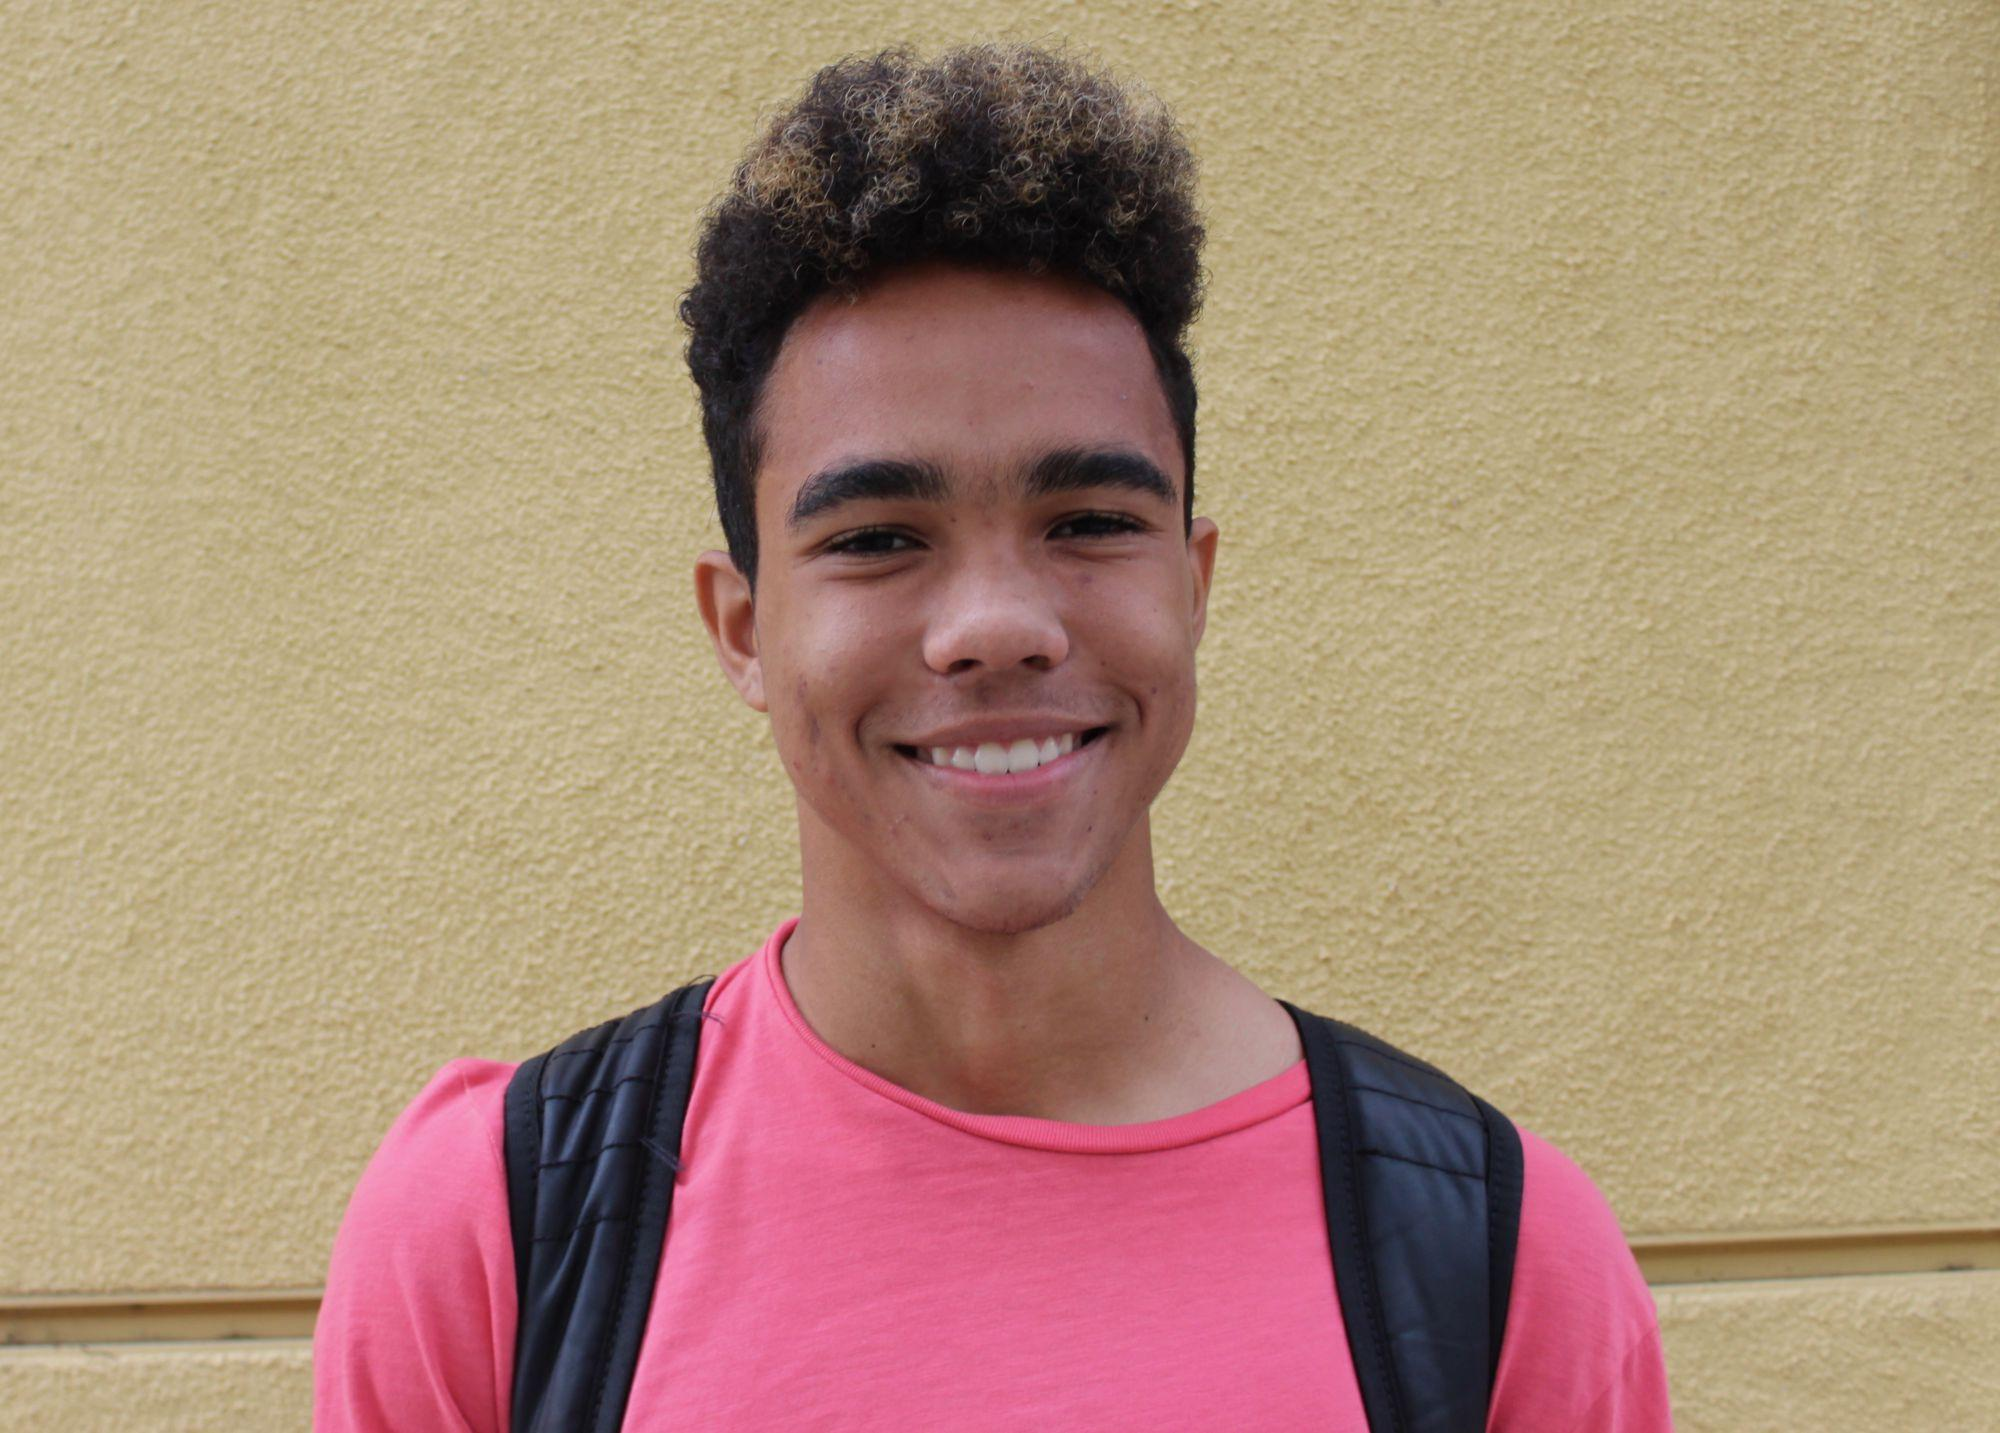 Jamaican sophomore shares his experience adapting to Redwood